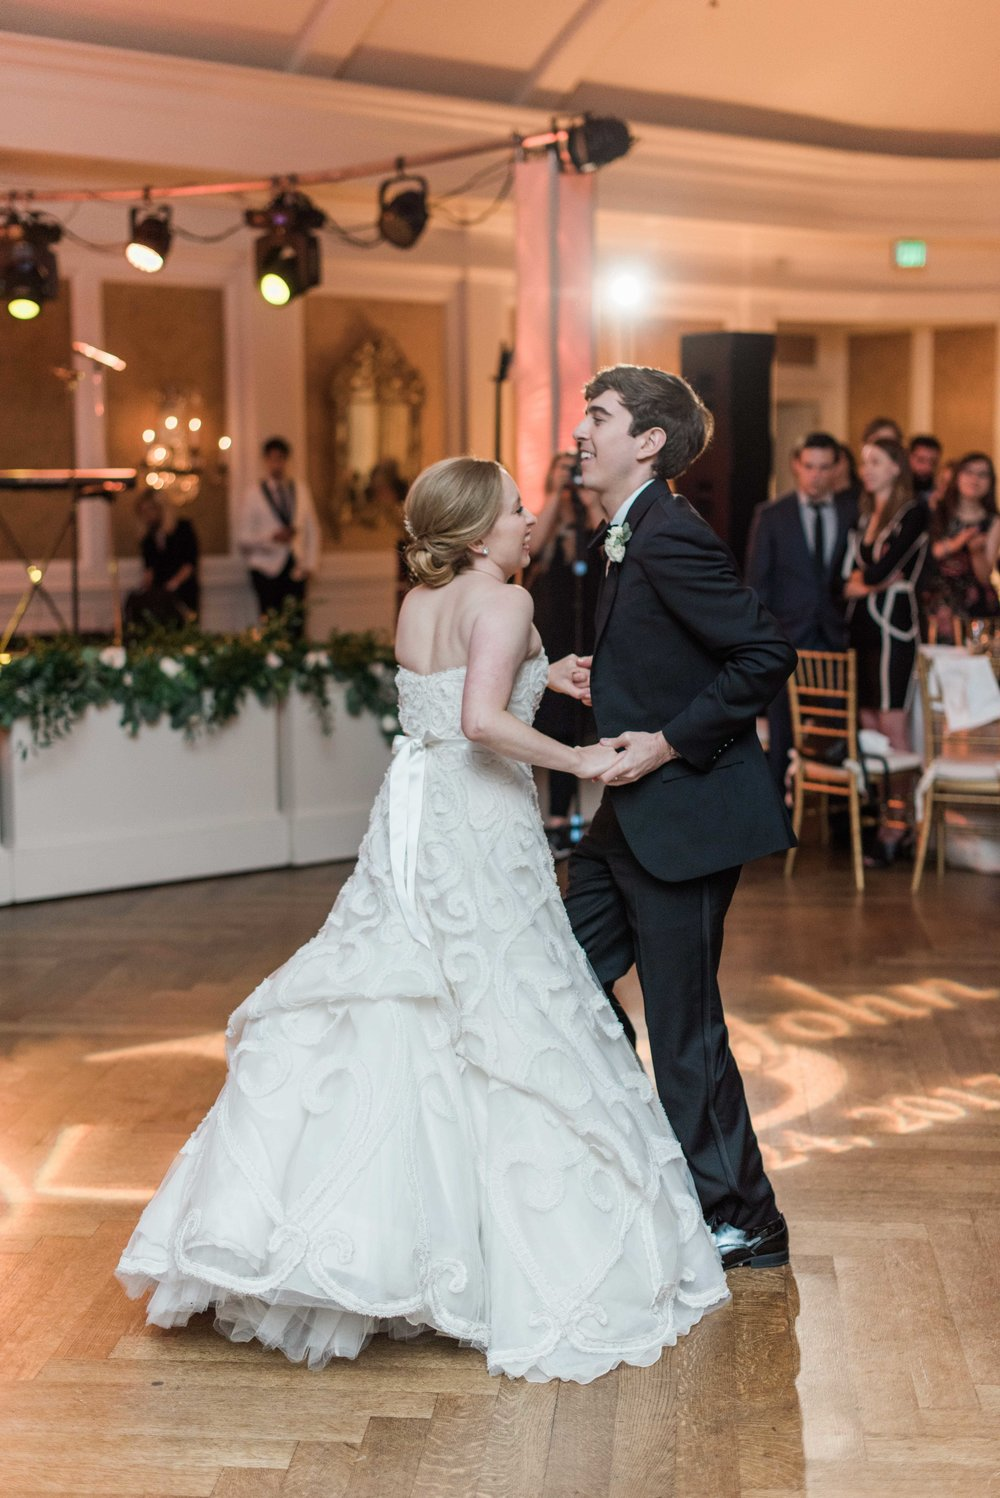 Fine-Art-Film-Houston-Wedding-Photographer-Best-Top-Luxury-Texas-Austin-Dallas-Destination-Dana-Fernandez-Photography-River-Oaks-Country-Club-South-Main-Baptist-Ceremony-Reception-Wedding-38.jpg